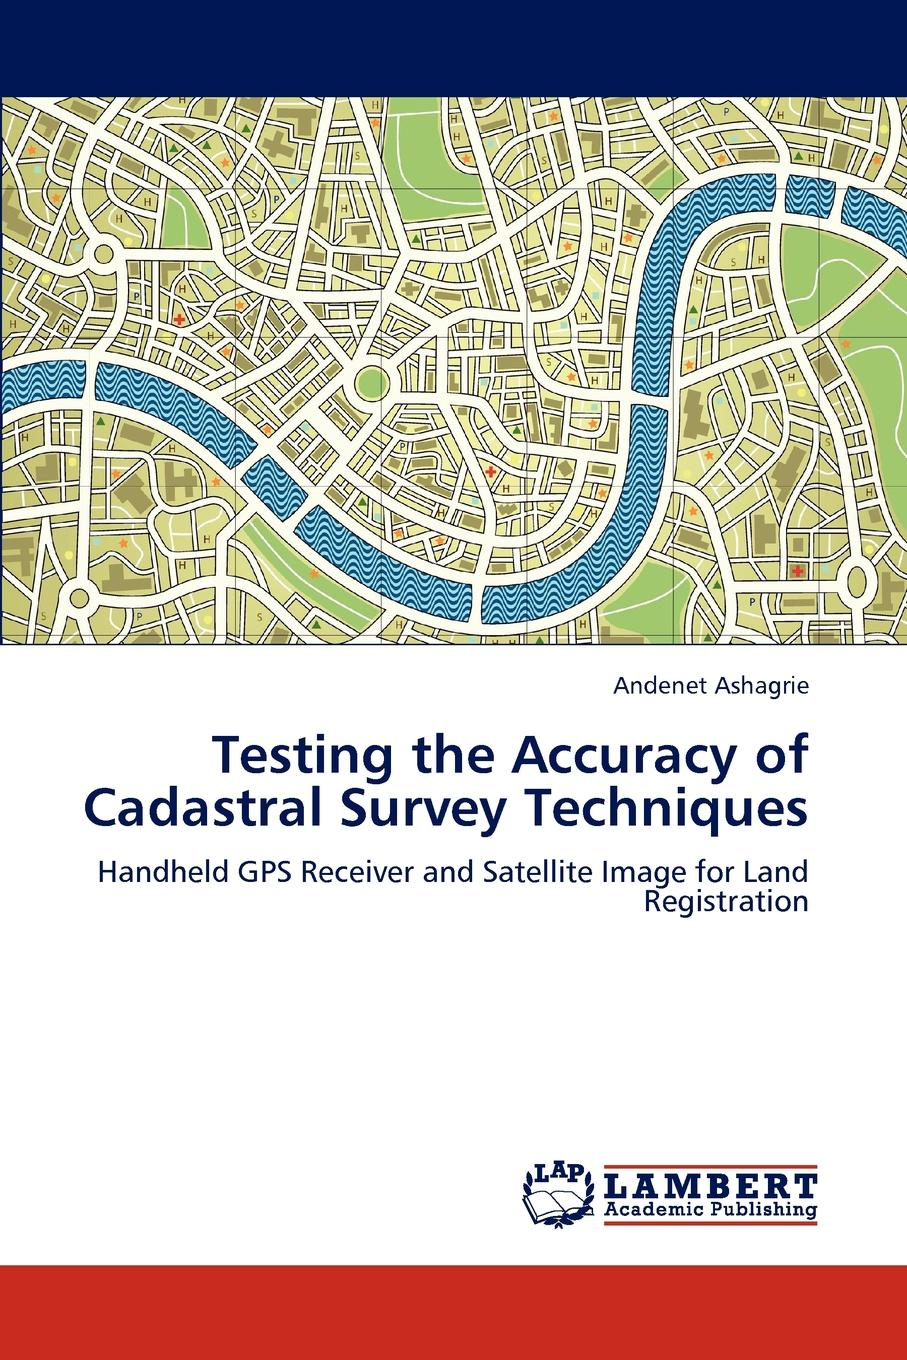 Andenet Ashagrie Testing the Accuracy of Cadastral Survey Techniques